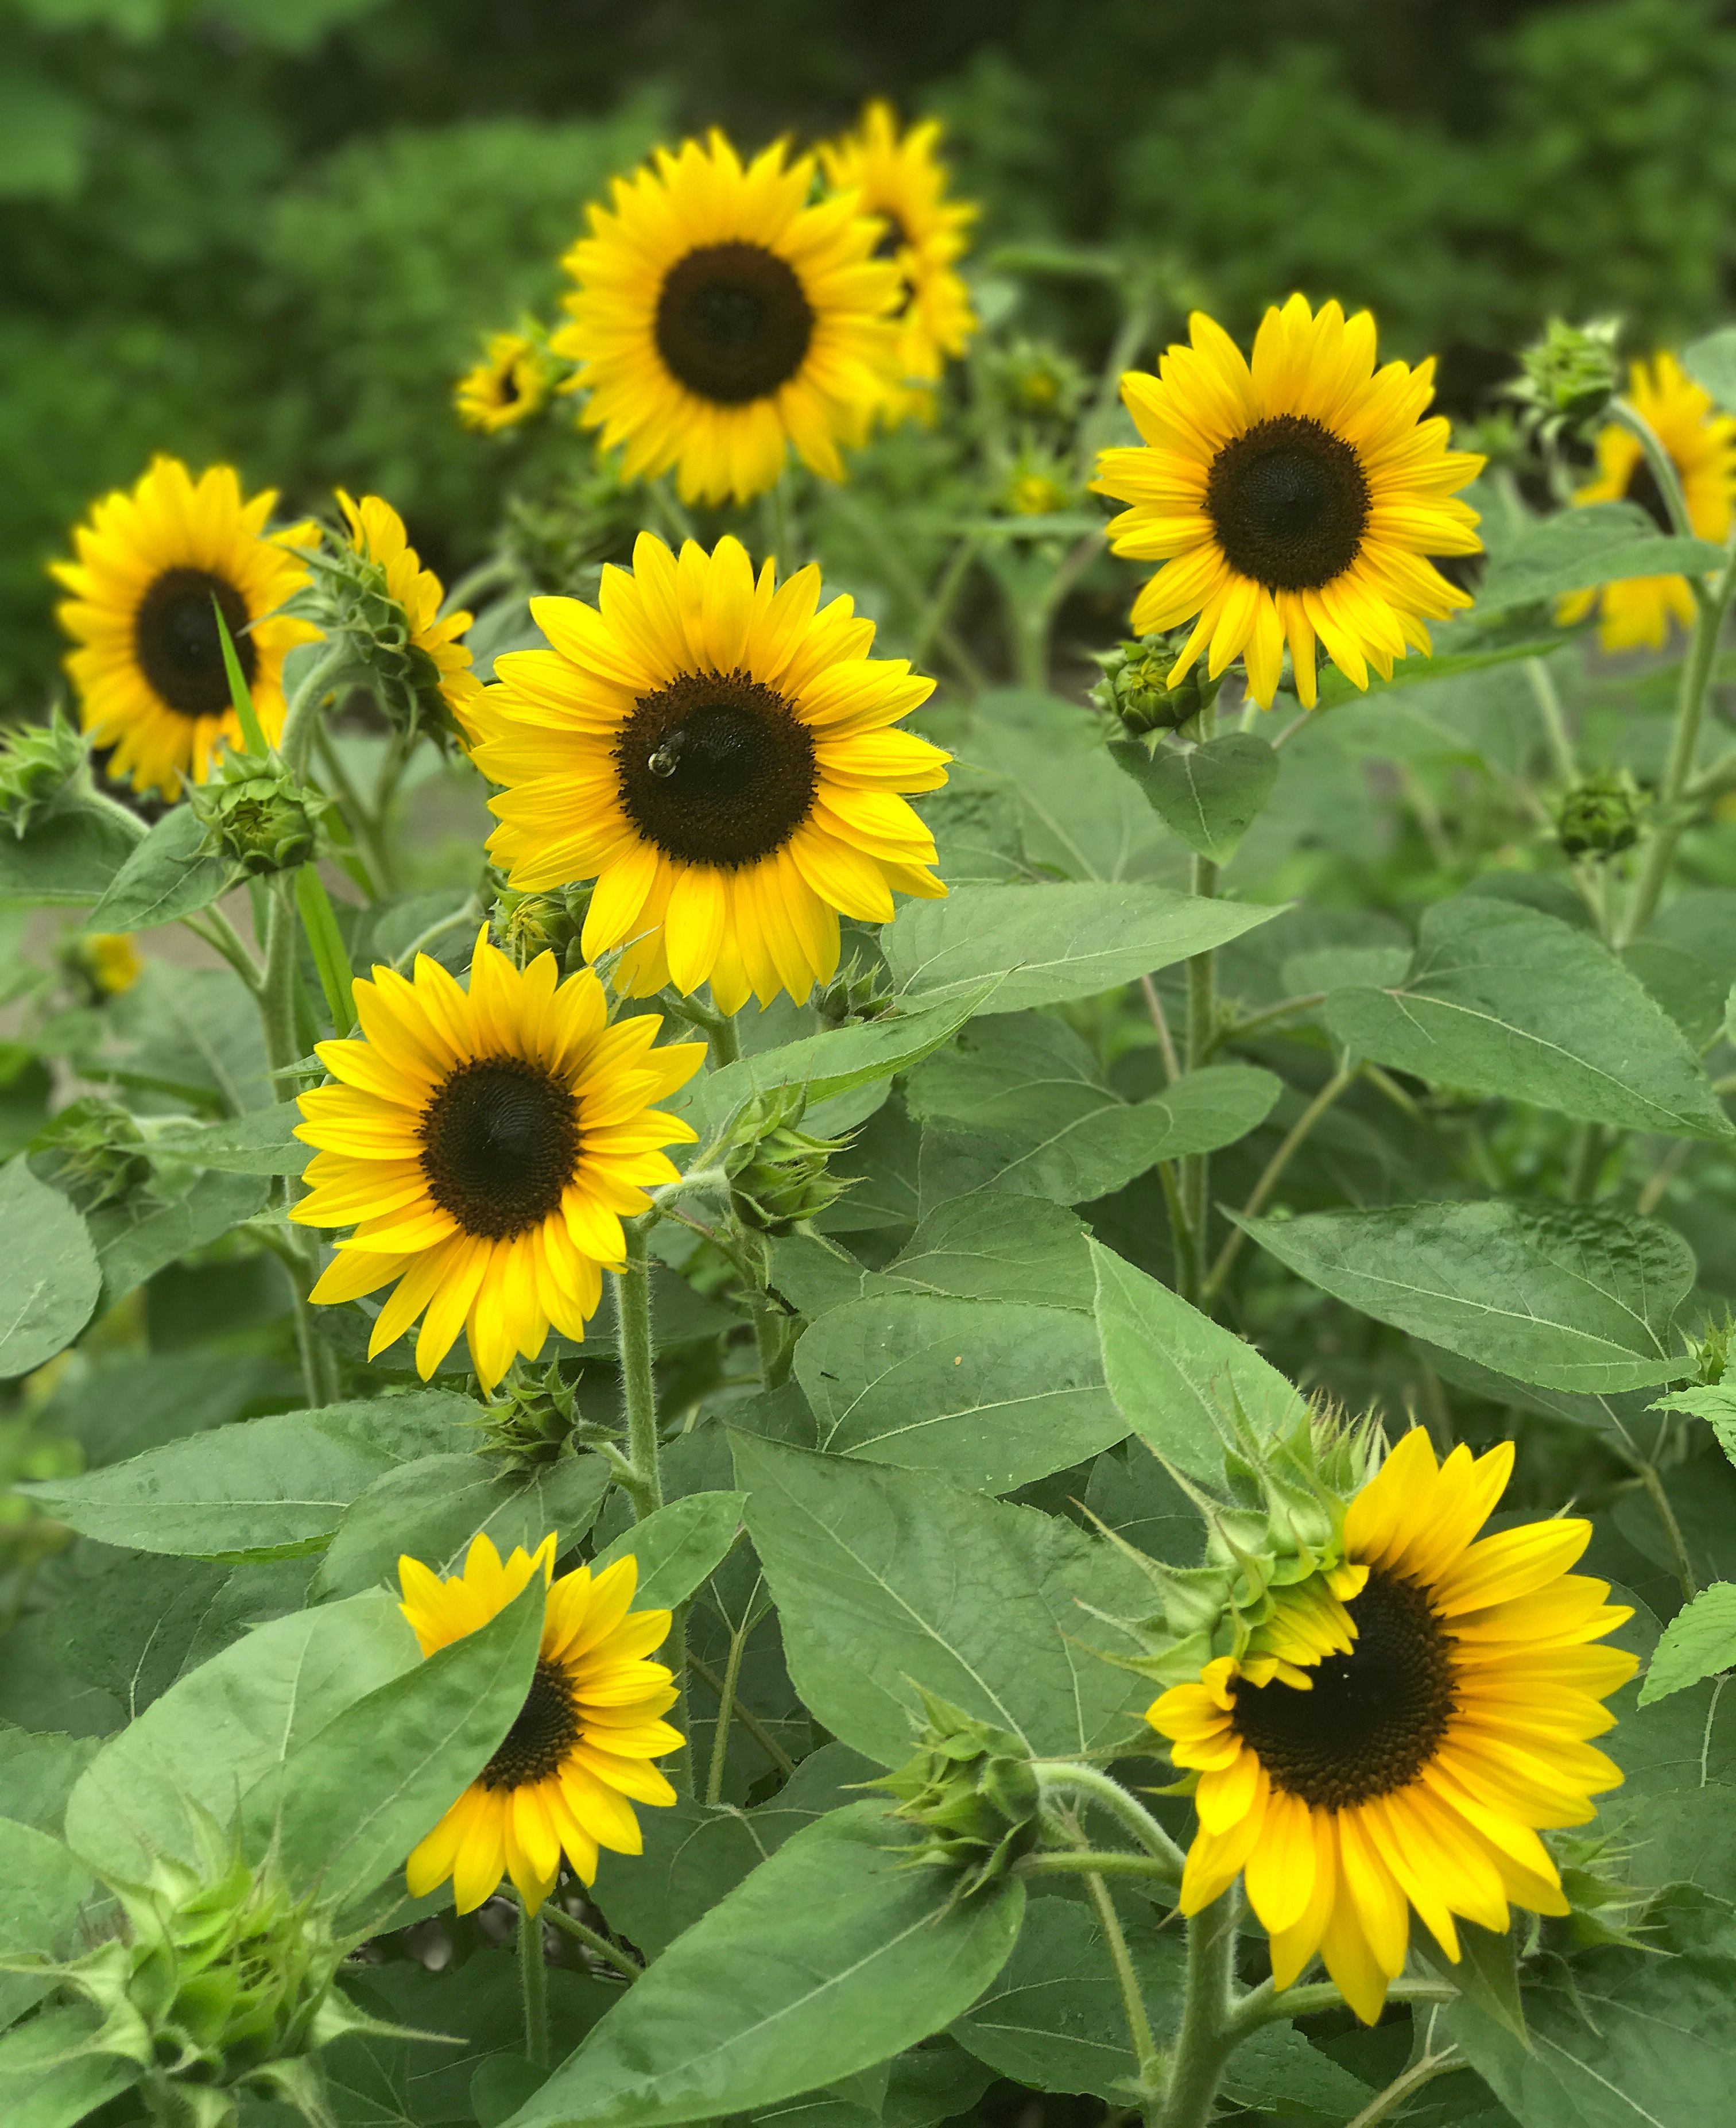 We Fell In Love With Junior Dwarf Sunflowers All Over Again Last Year In The Test Garden They Re Petit Dwarf Sunflowers Planting Sunflowers Sunflower Bouquets